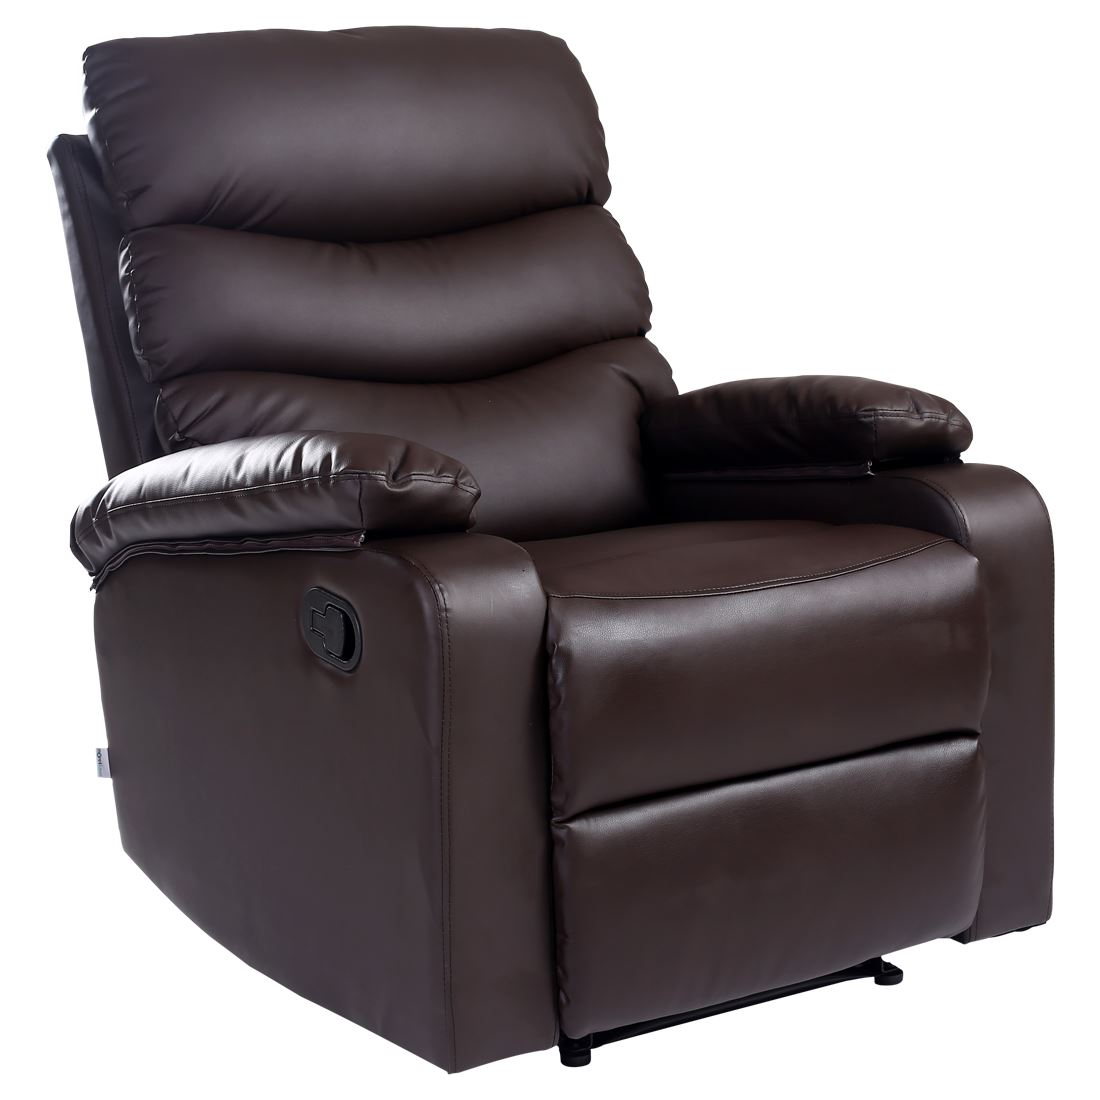 home ashby leather recliner armchair sofa home lounge chair reclining